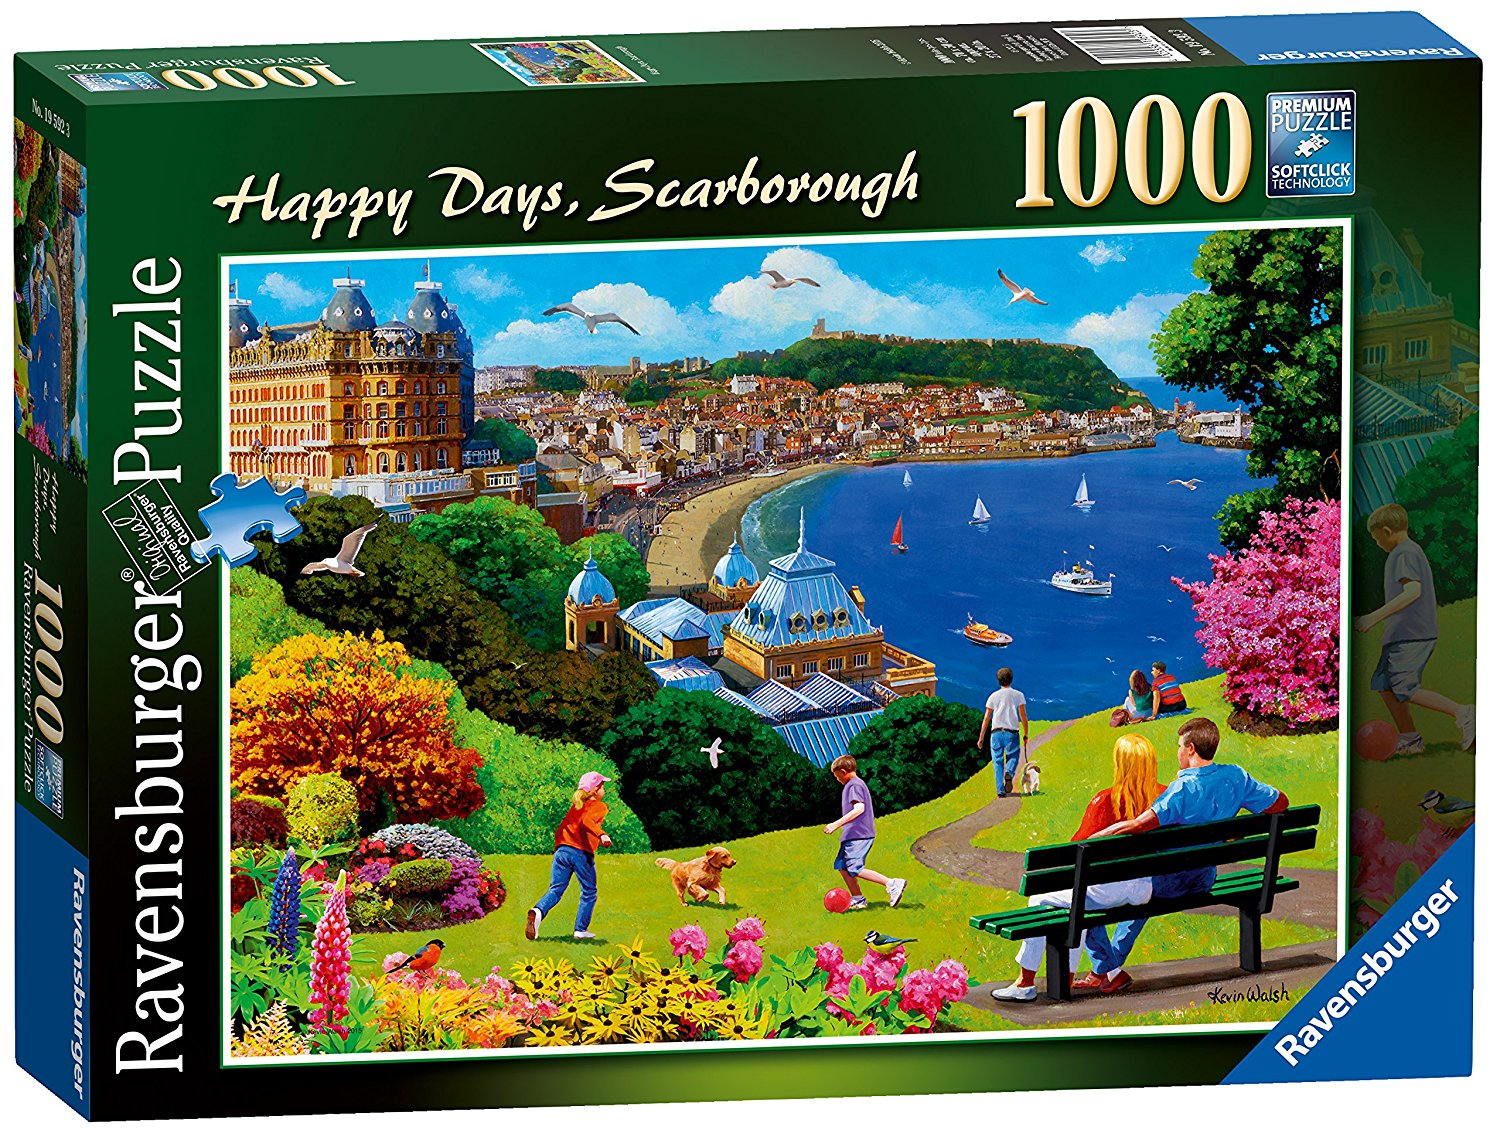 Happy Days Scarborough, 1000pc